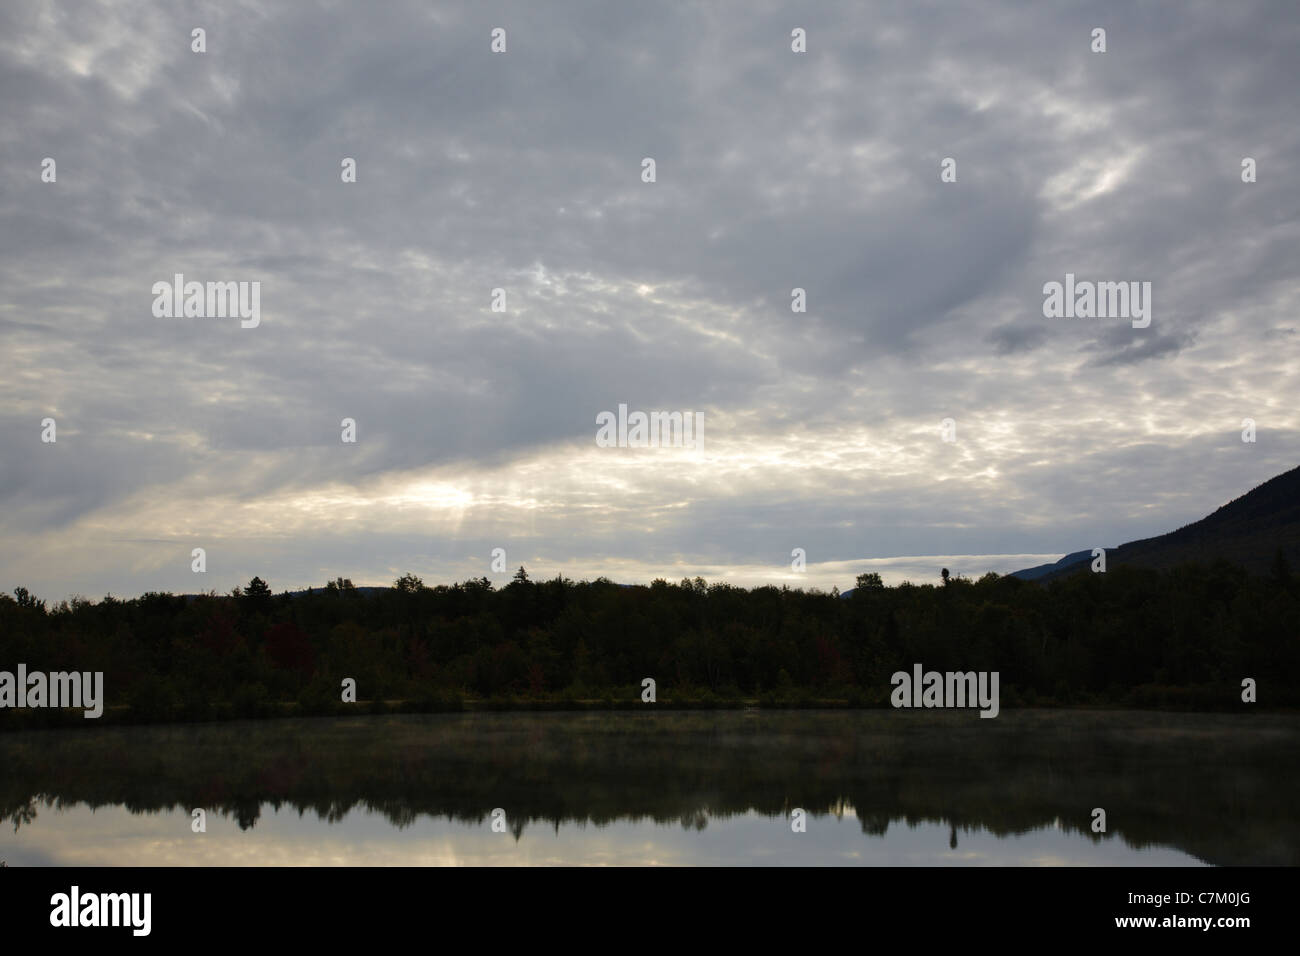 Cloud cover over Durand Lake in Randolph, New Hampshire USA during the summer months - Stock Image